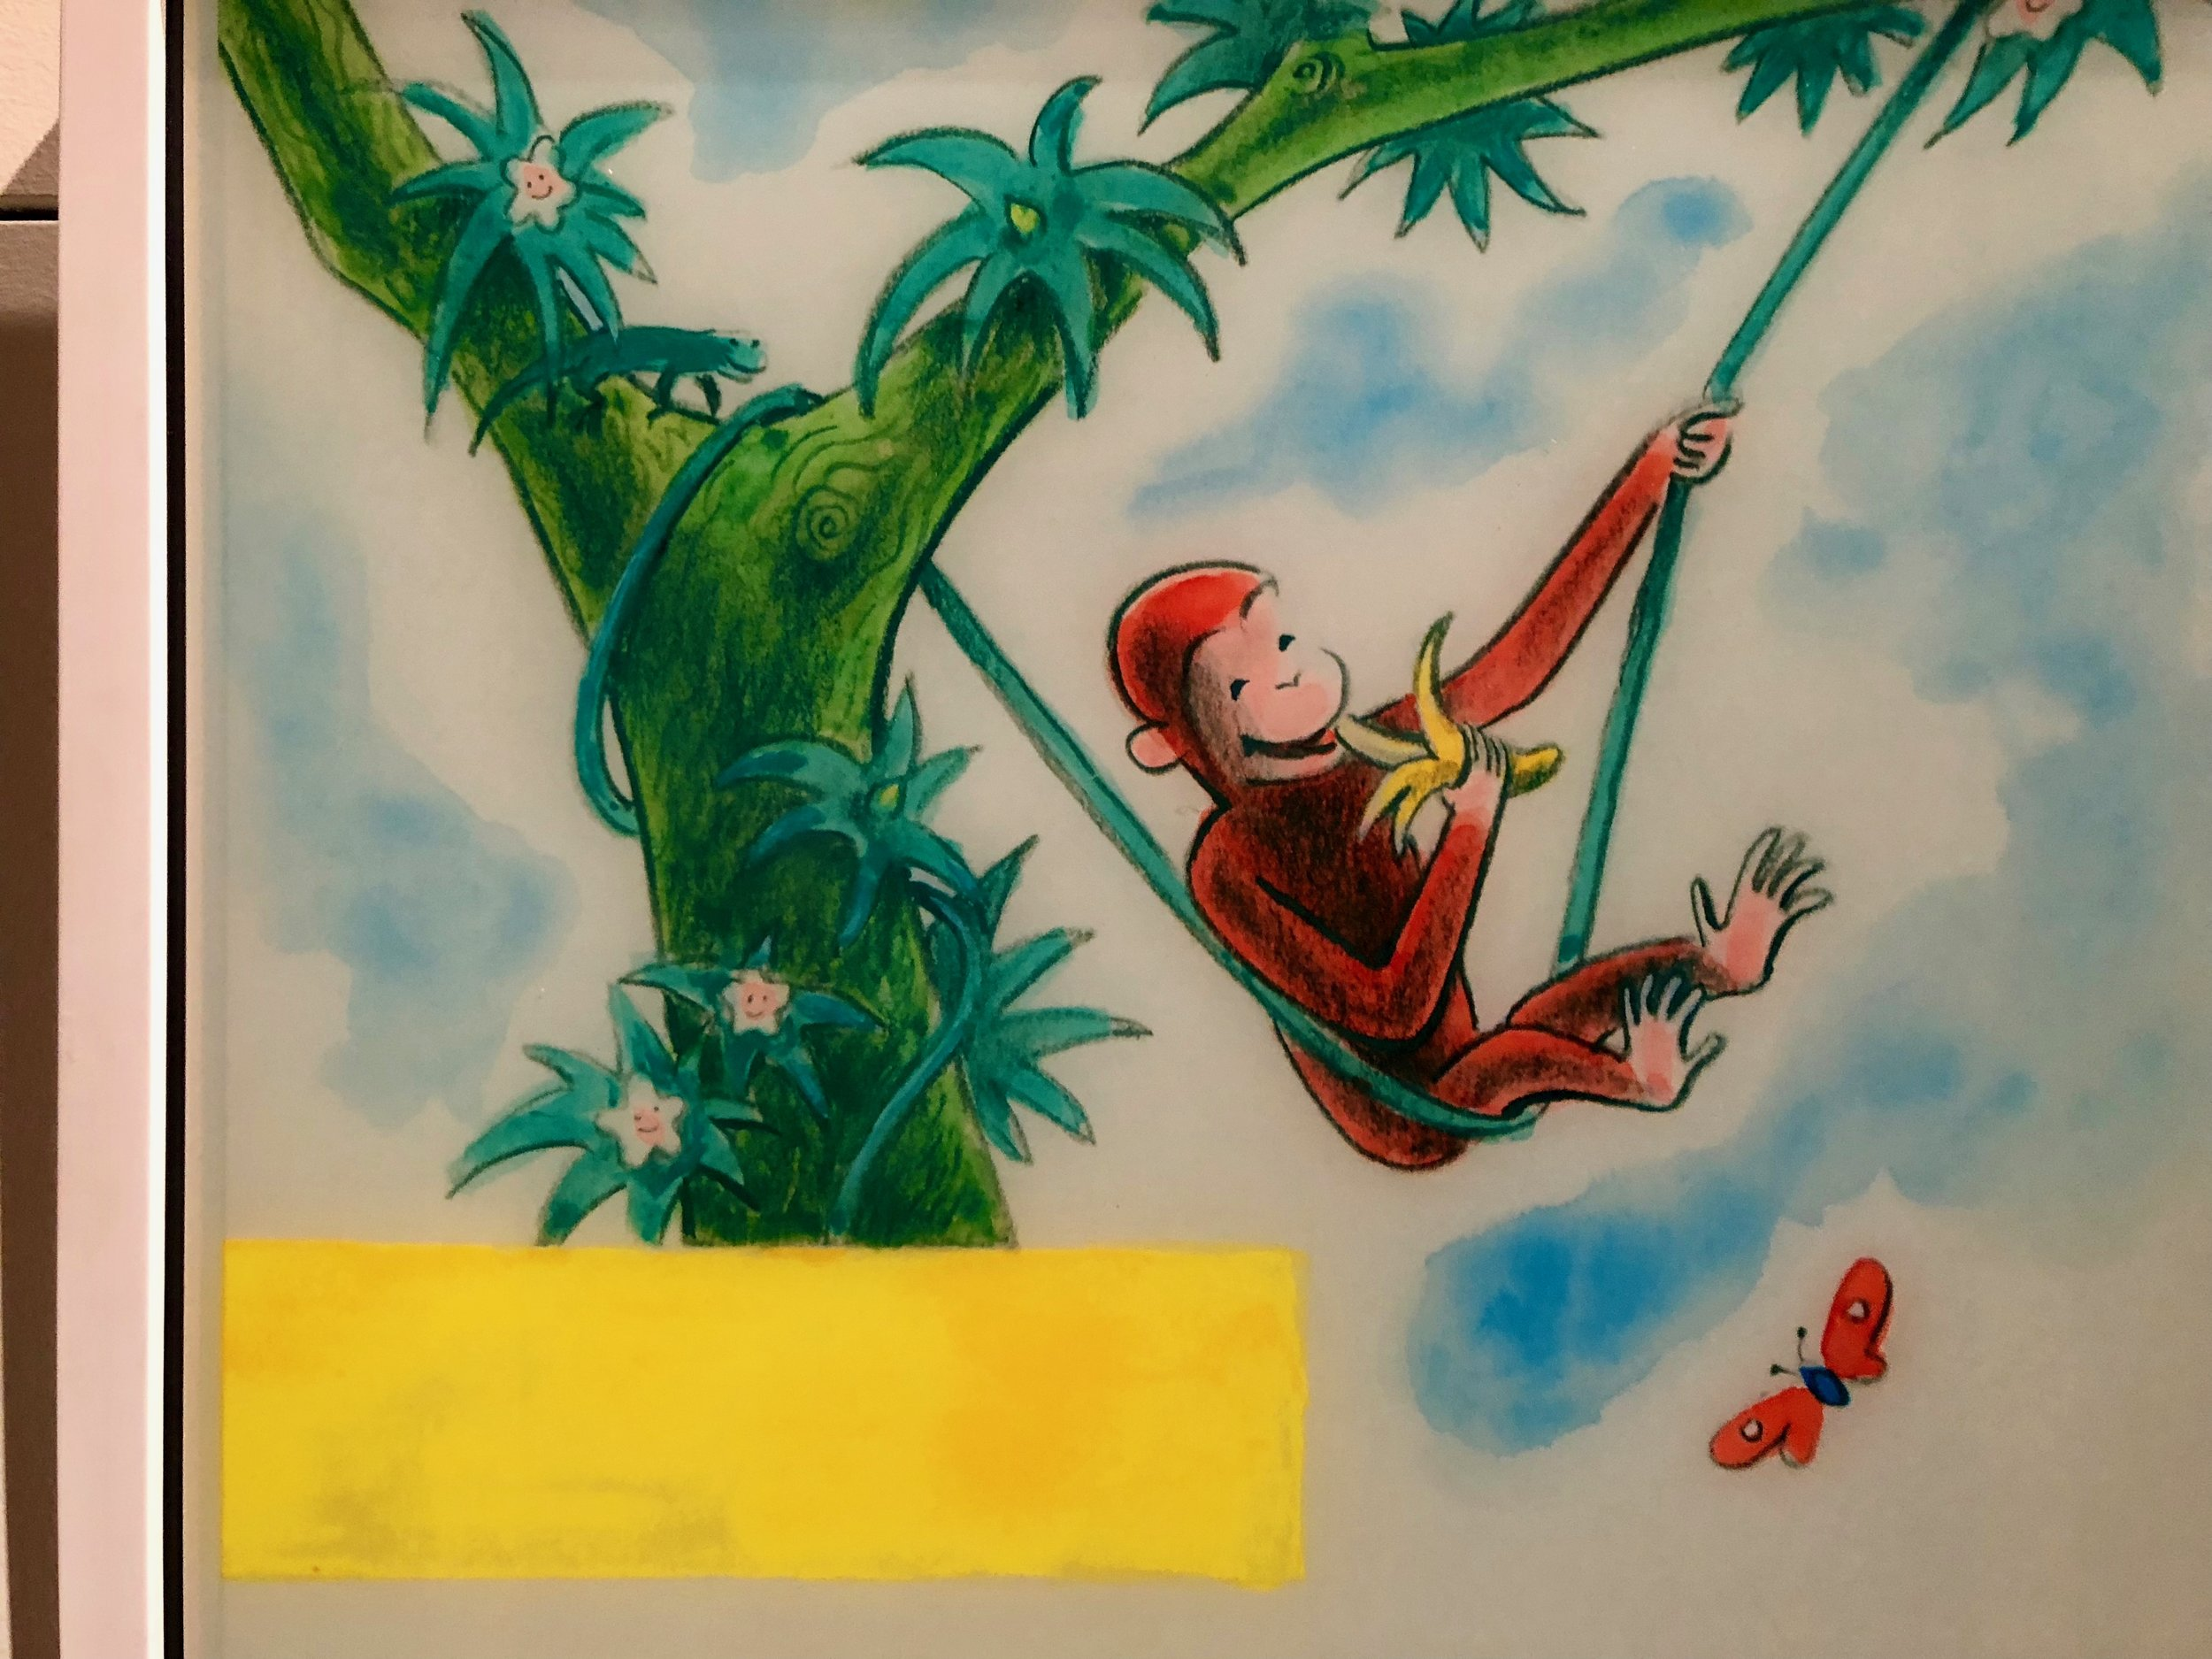 A joint exhibition with the Holocaust Museum details the creators of Curious George and their Harrowing Escape from the Nazis